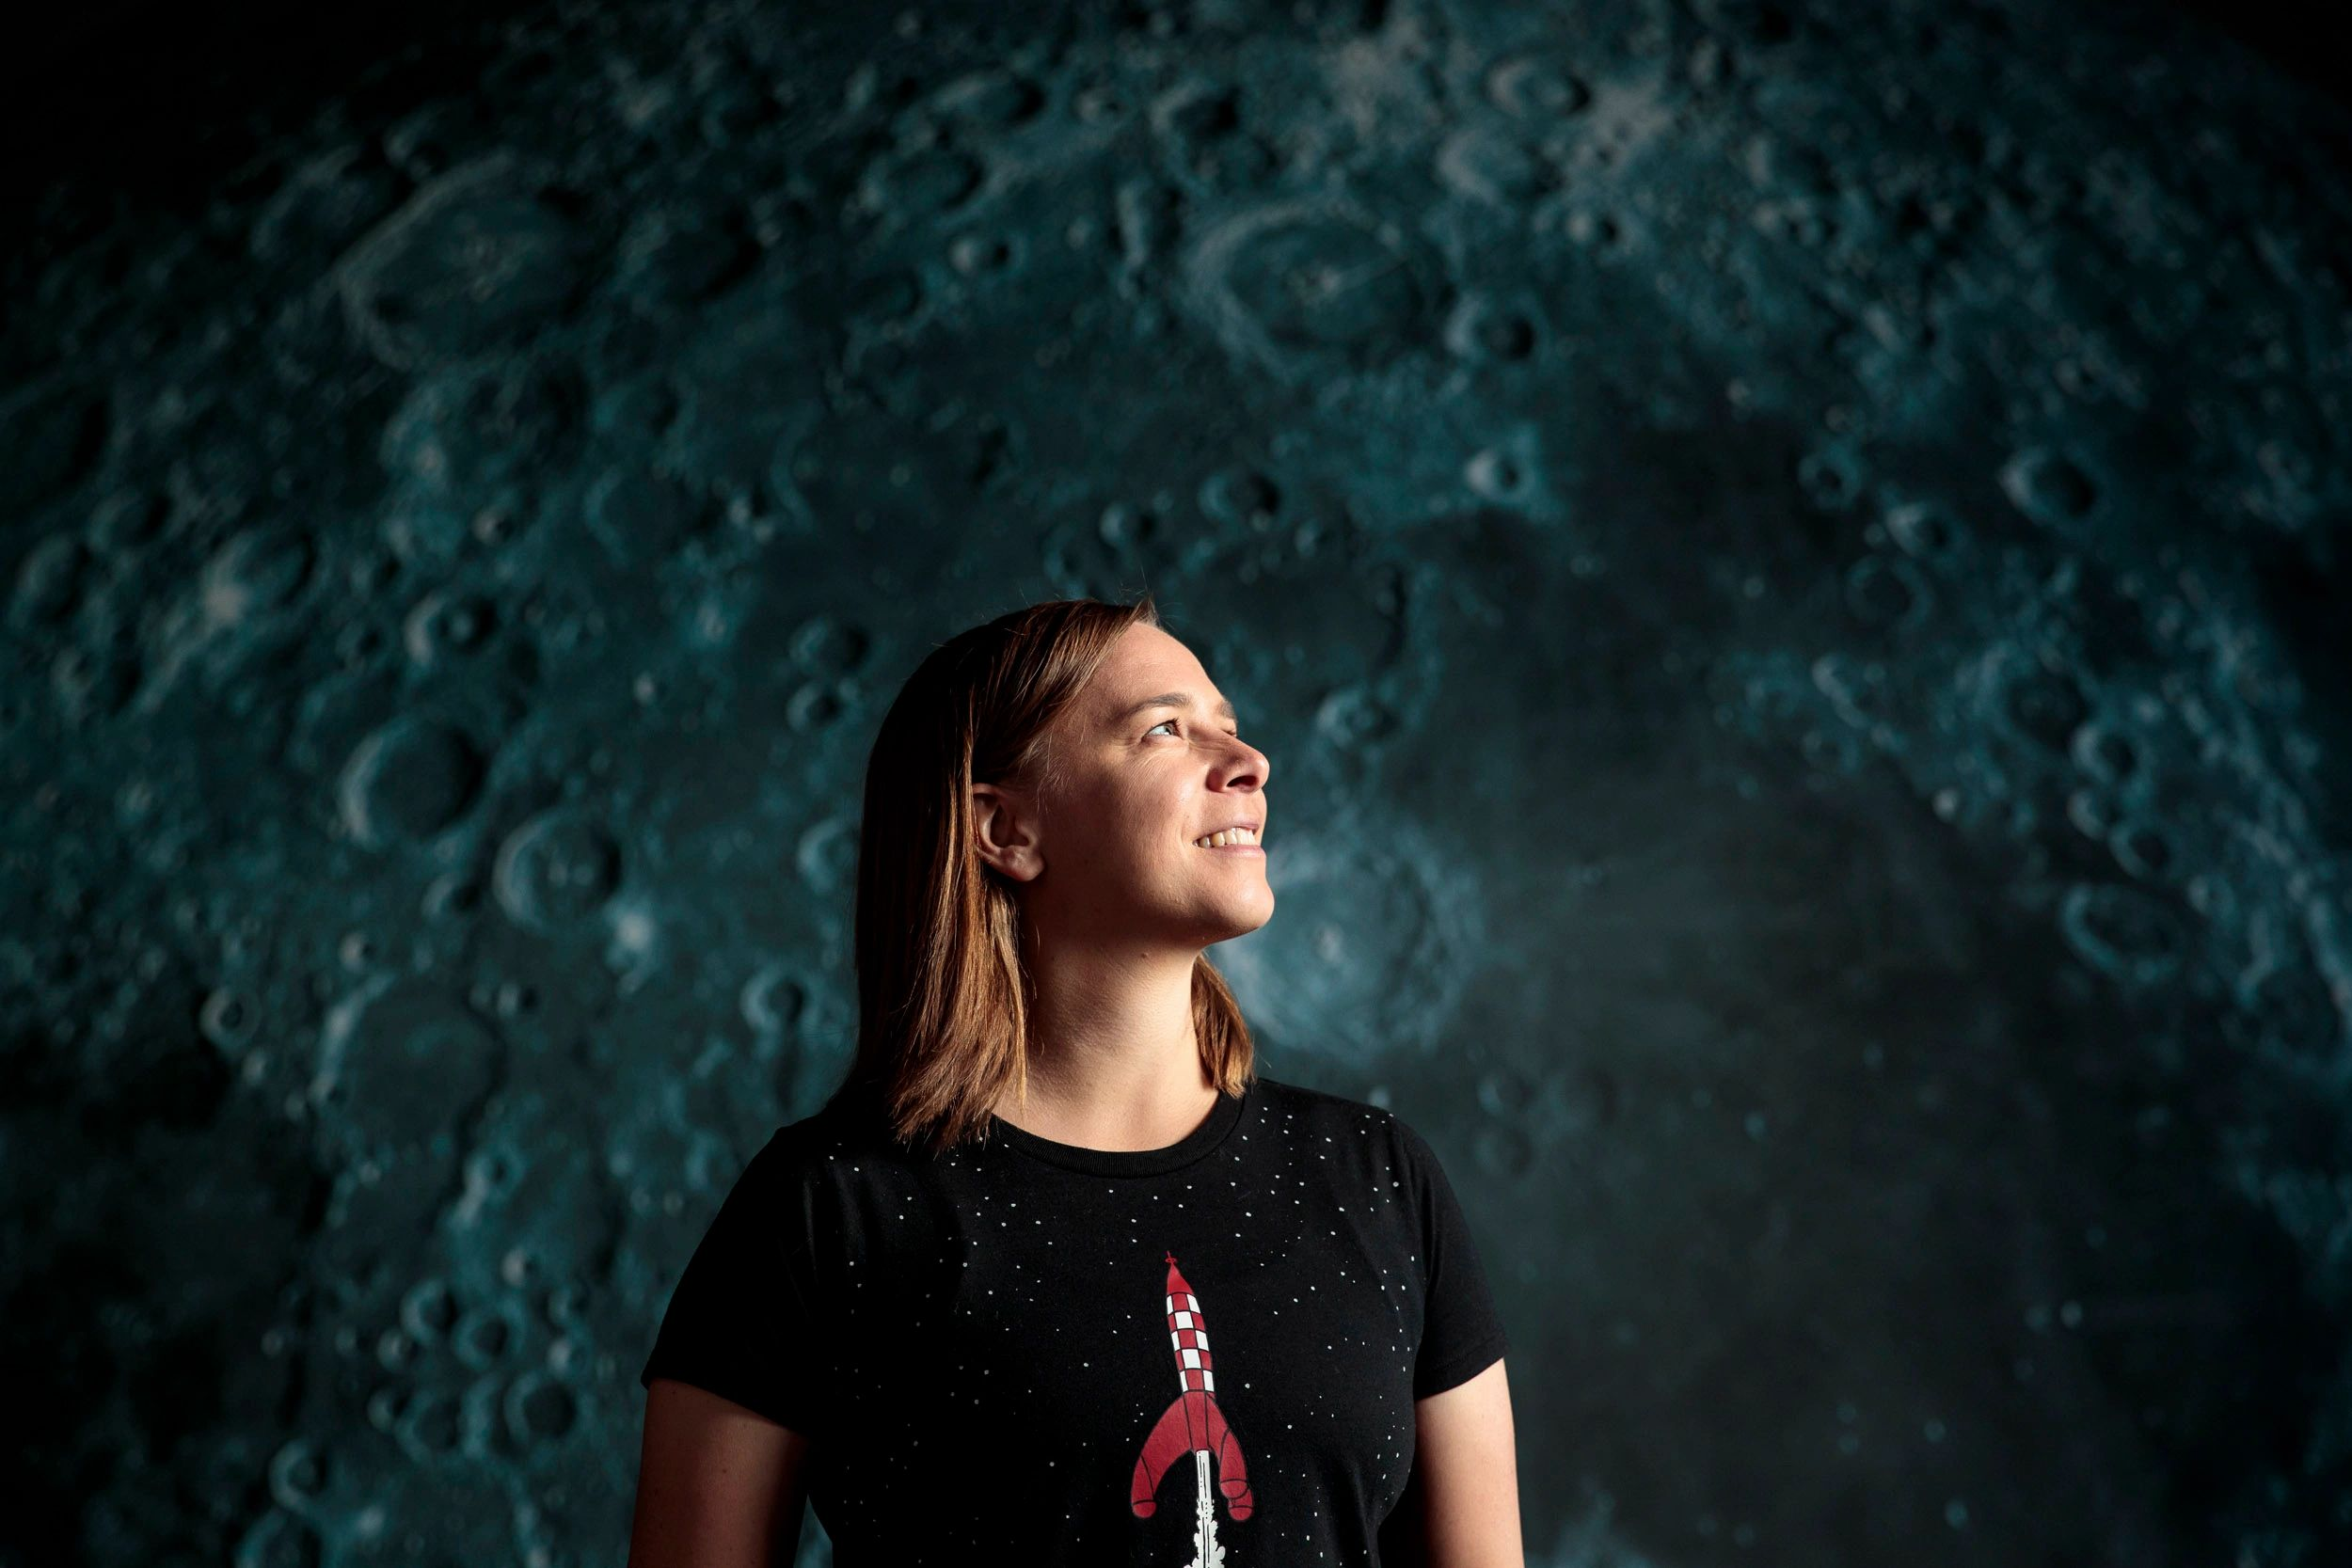 Professor Lisa Harvey-Smith, astronomer, author and Women in STEM ambassador looks up at the moon.